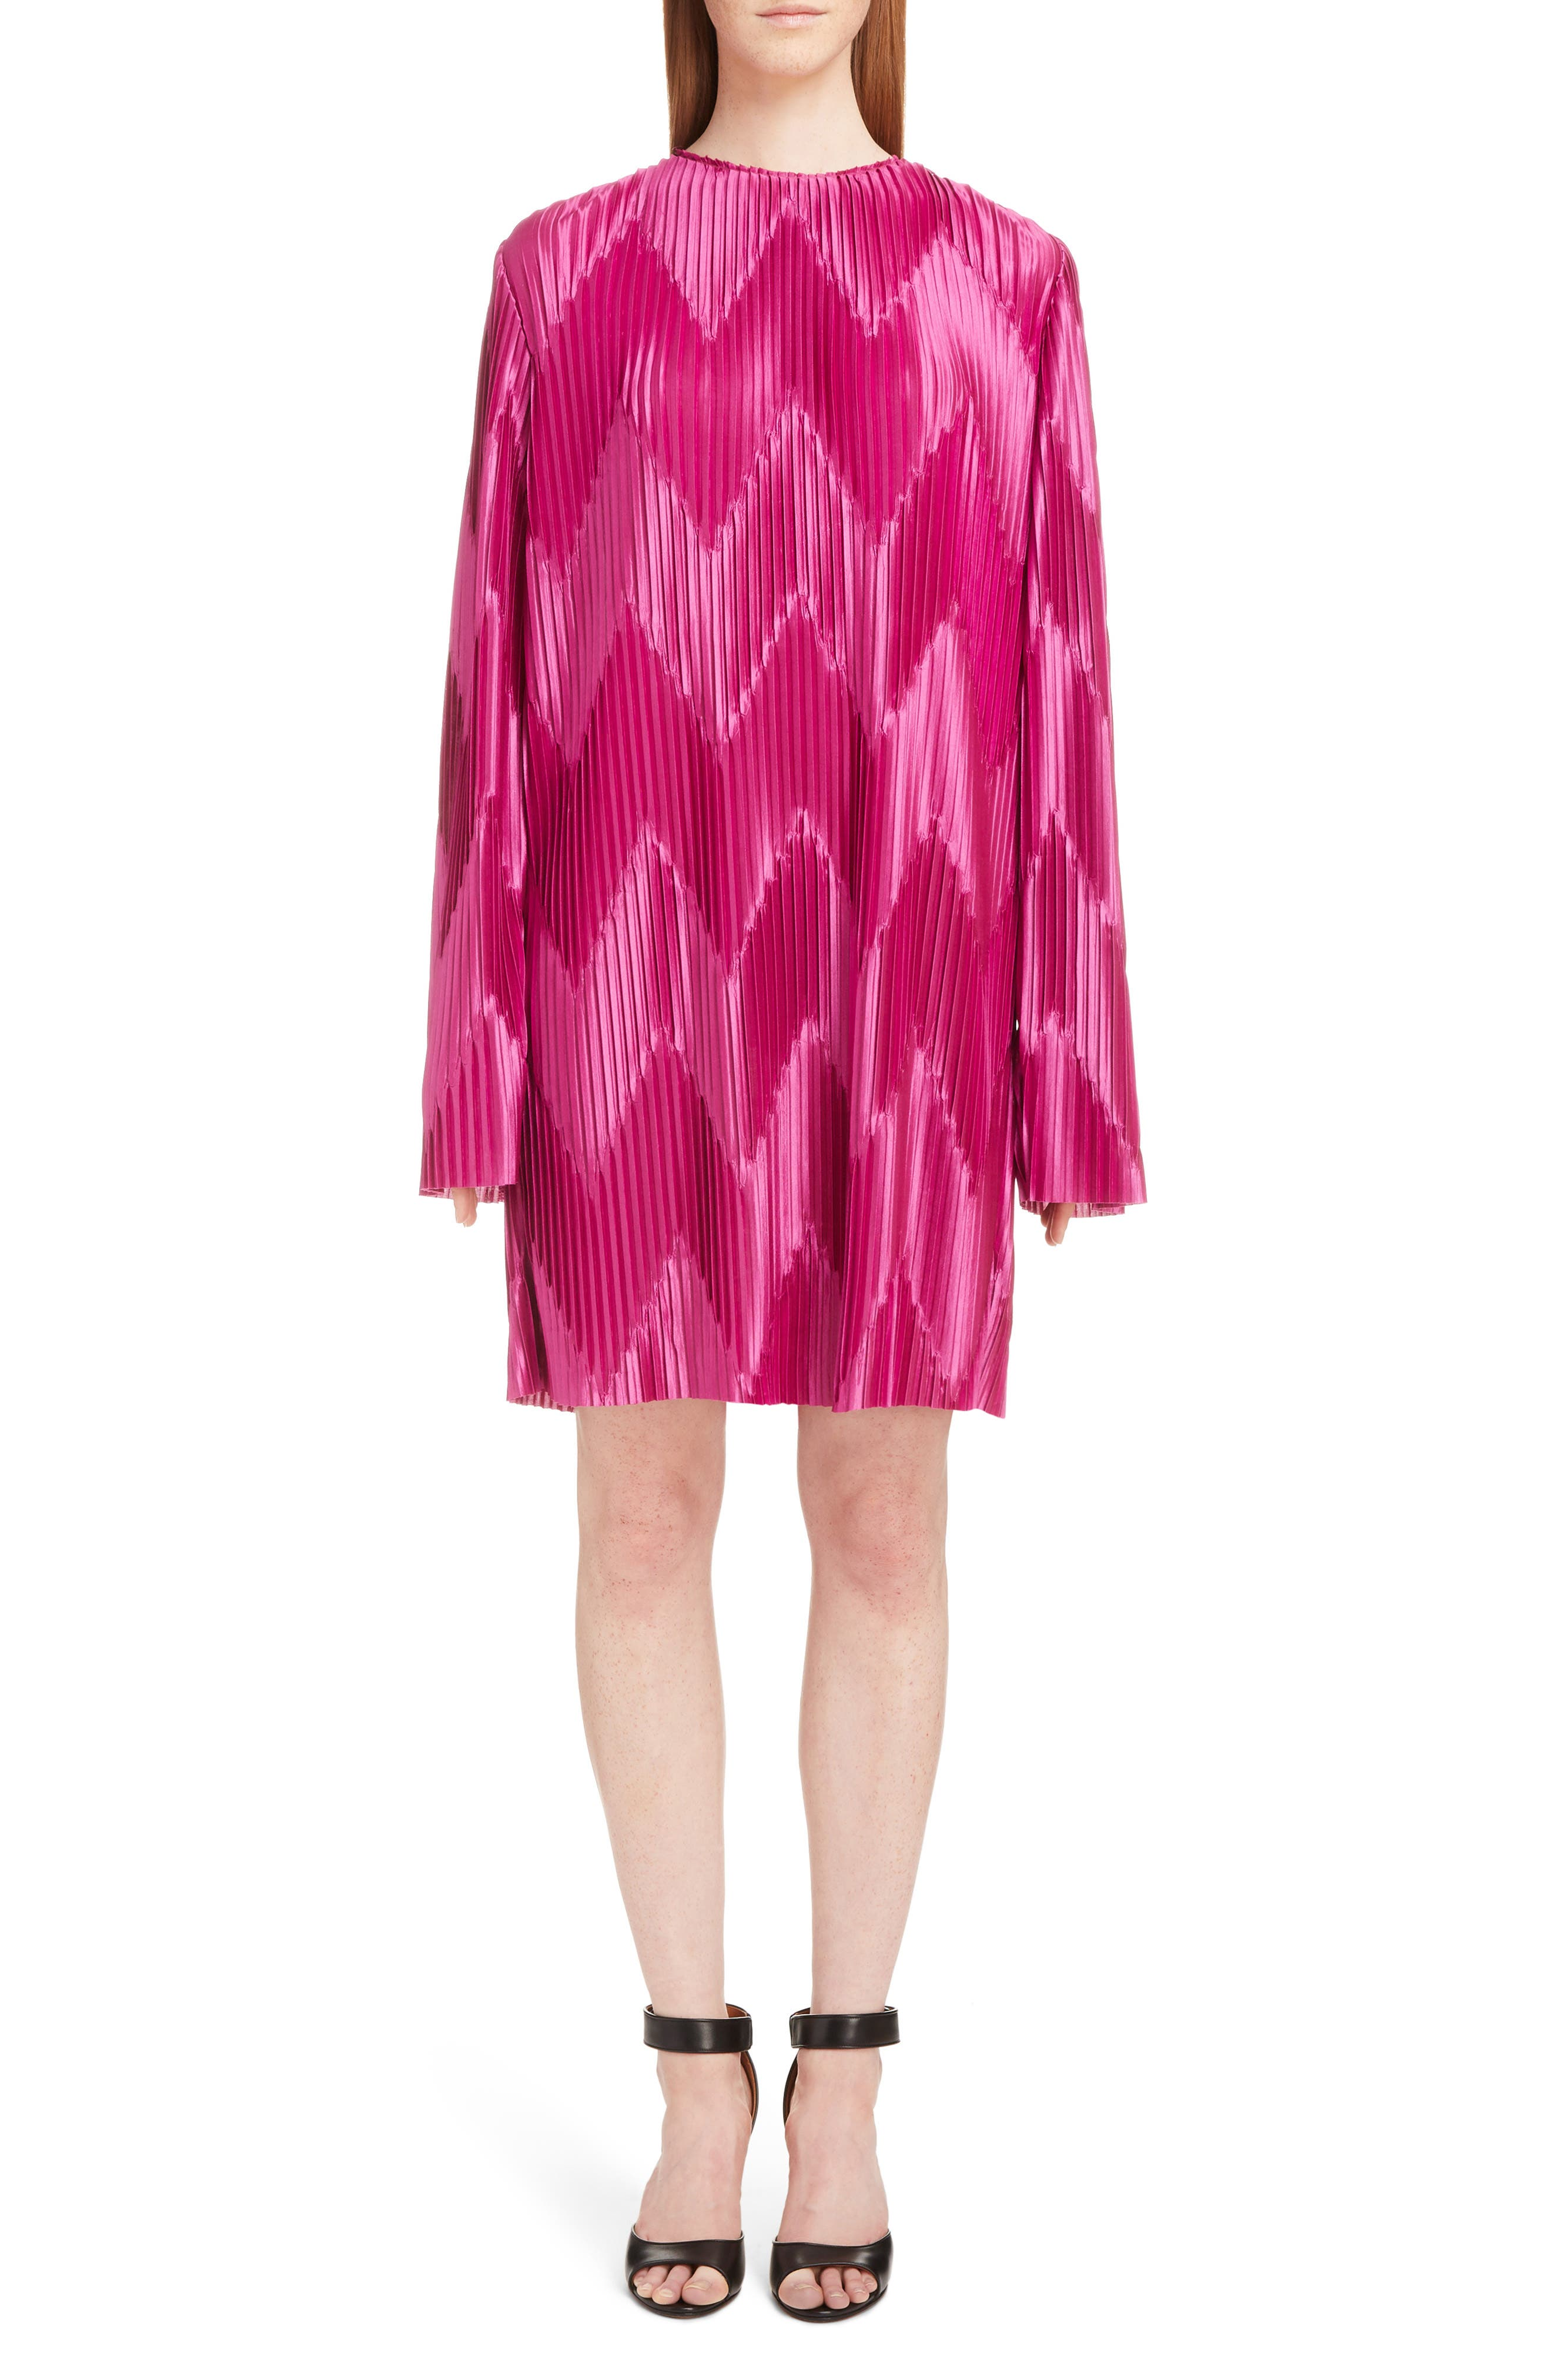 Givenchy Zigzag Pleated Jersey Dress, 8 FR - Pink